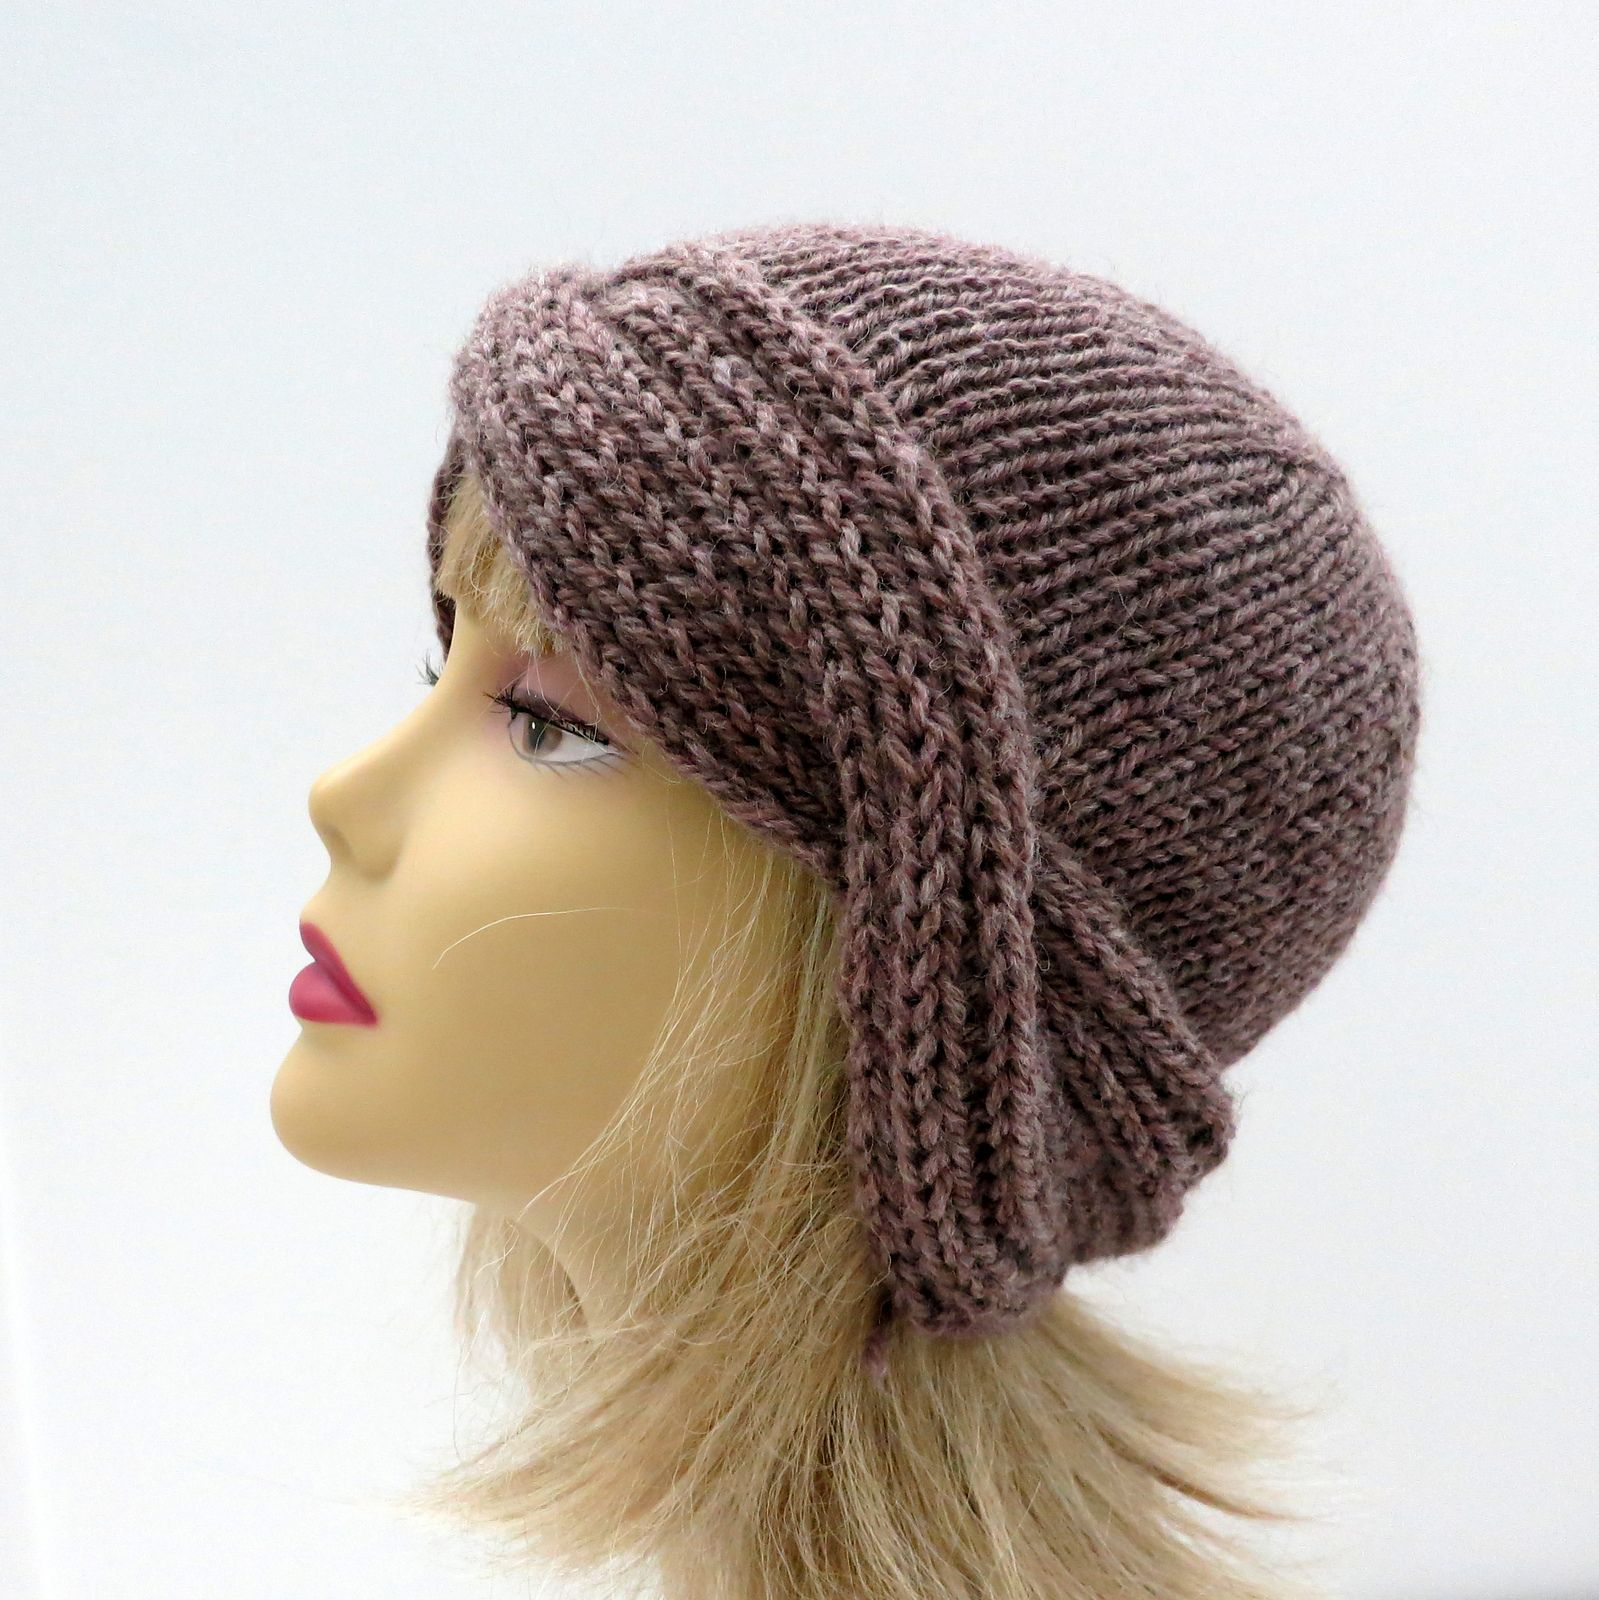 Ravelry: Downton Nora Vintage Cloche by Grace Rose